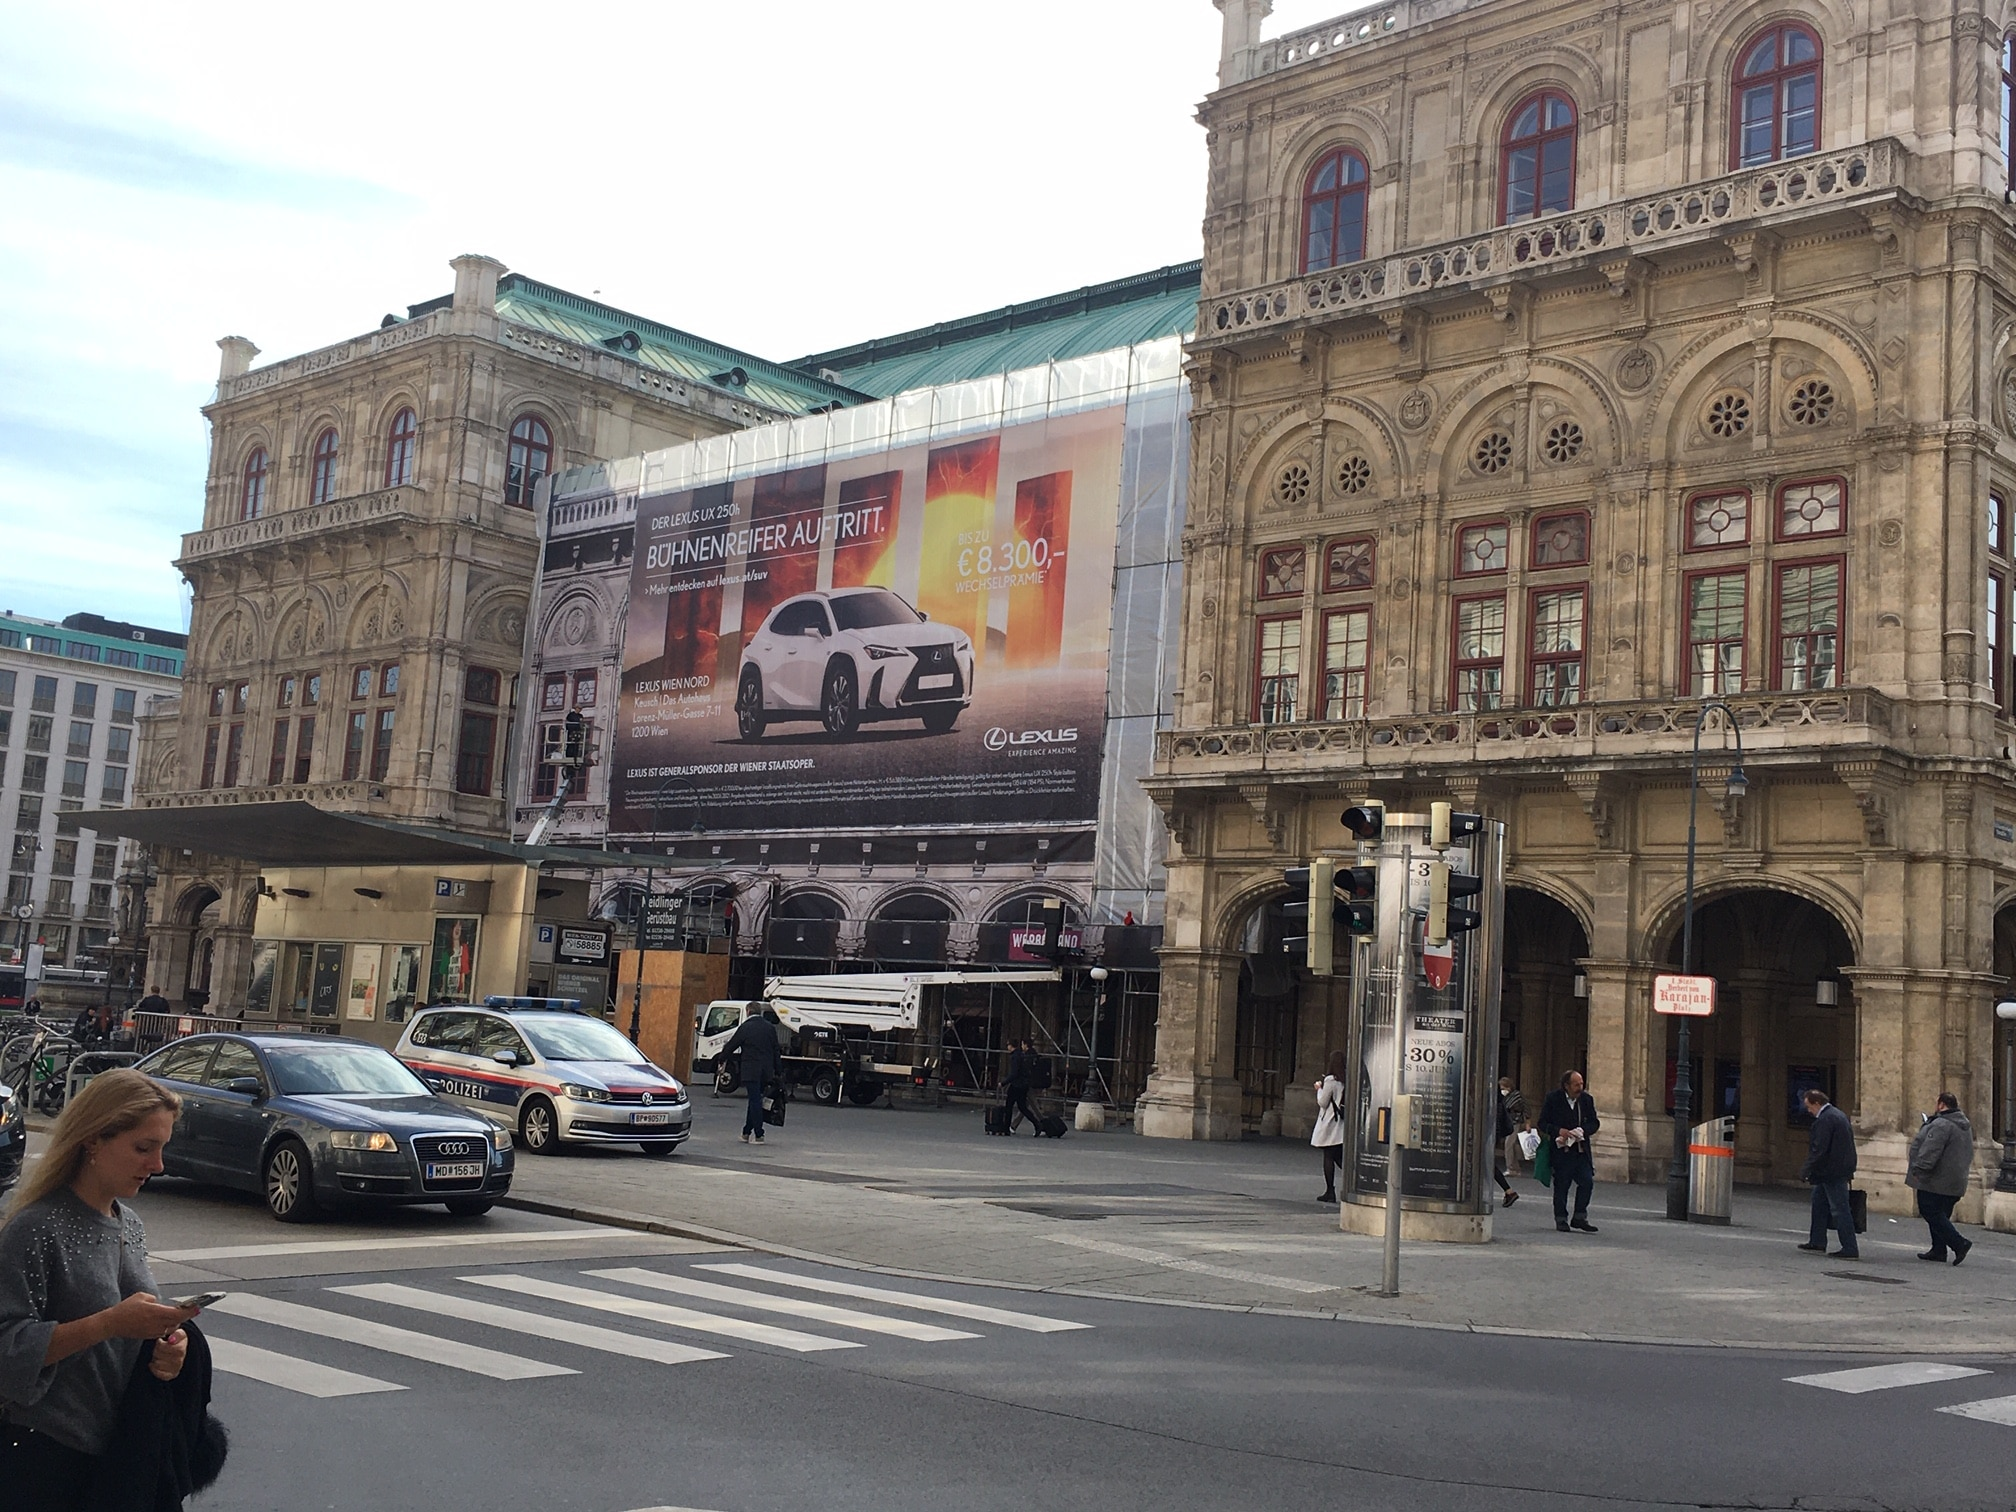 Bad ads: Vienna State Opera is now selling cars